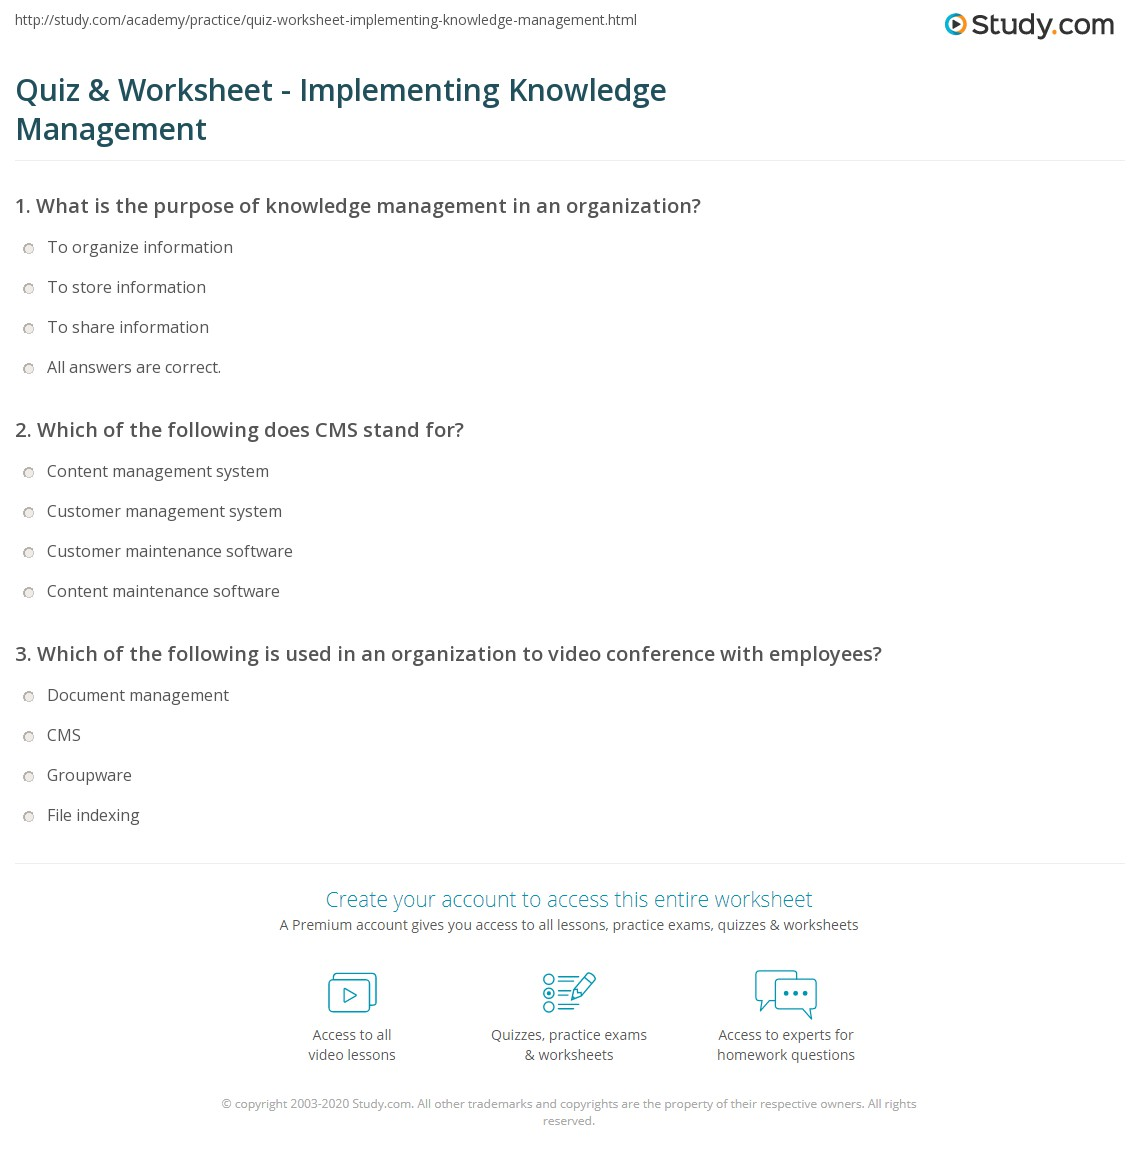 Quiz & Worksheet - Implementing Knowledge Management | Study com